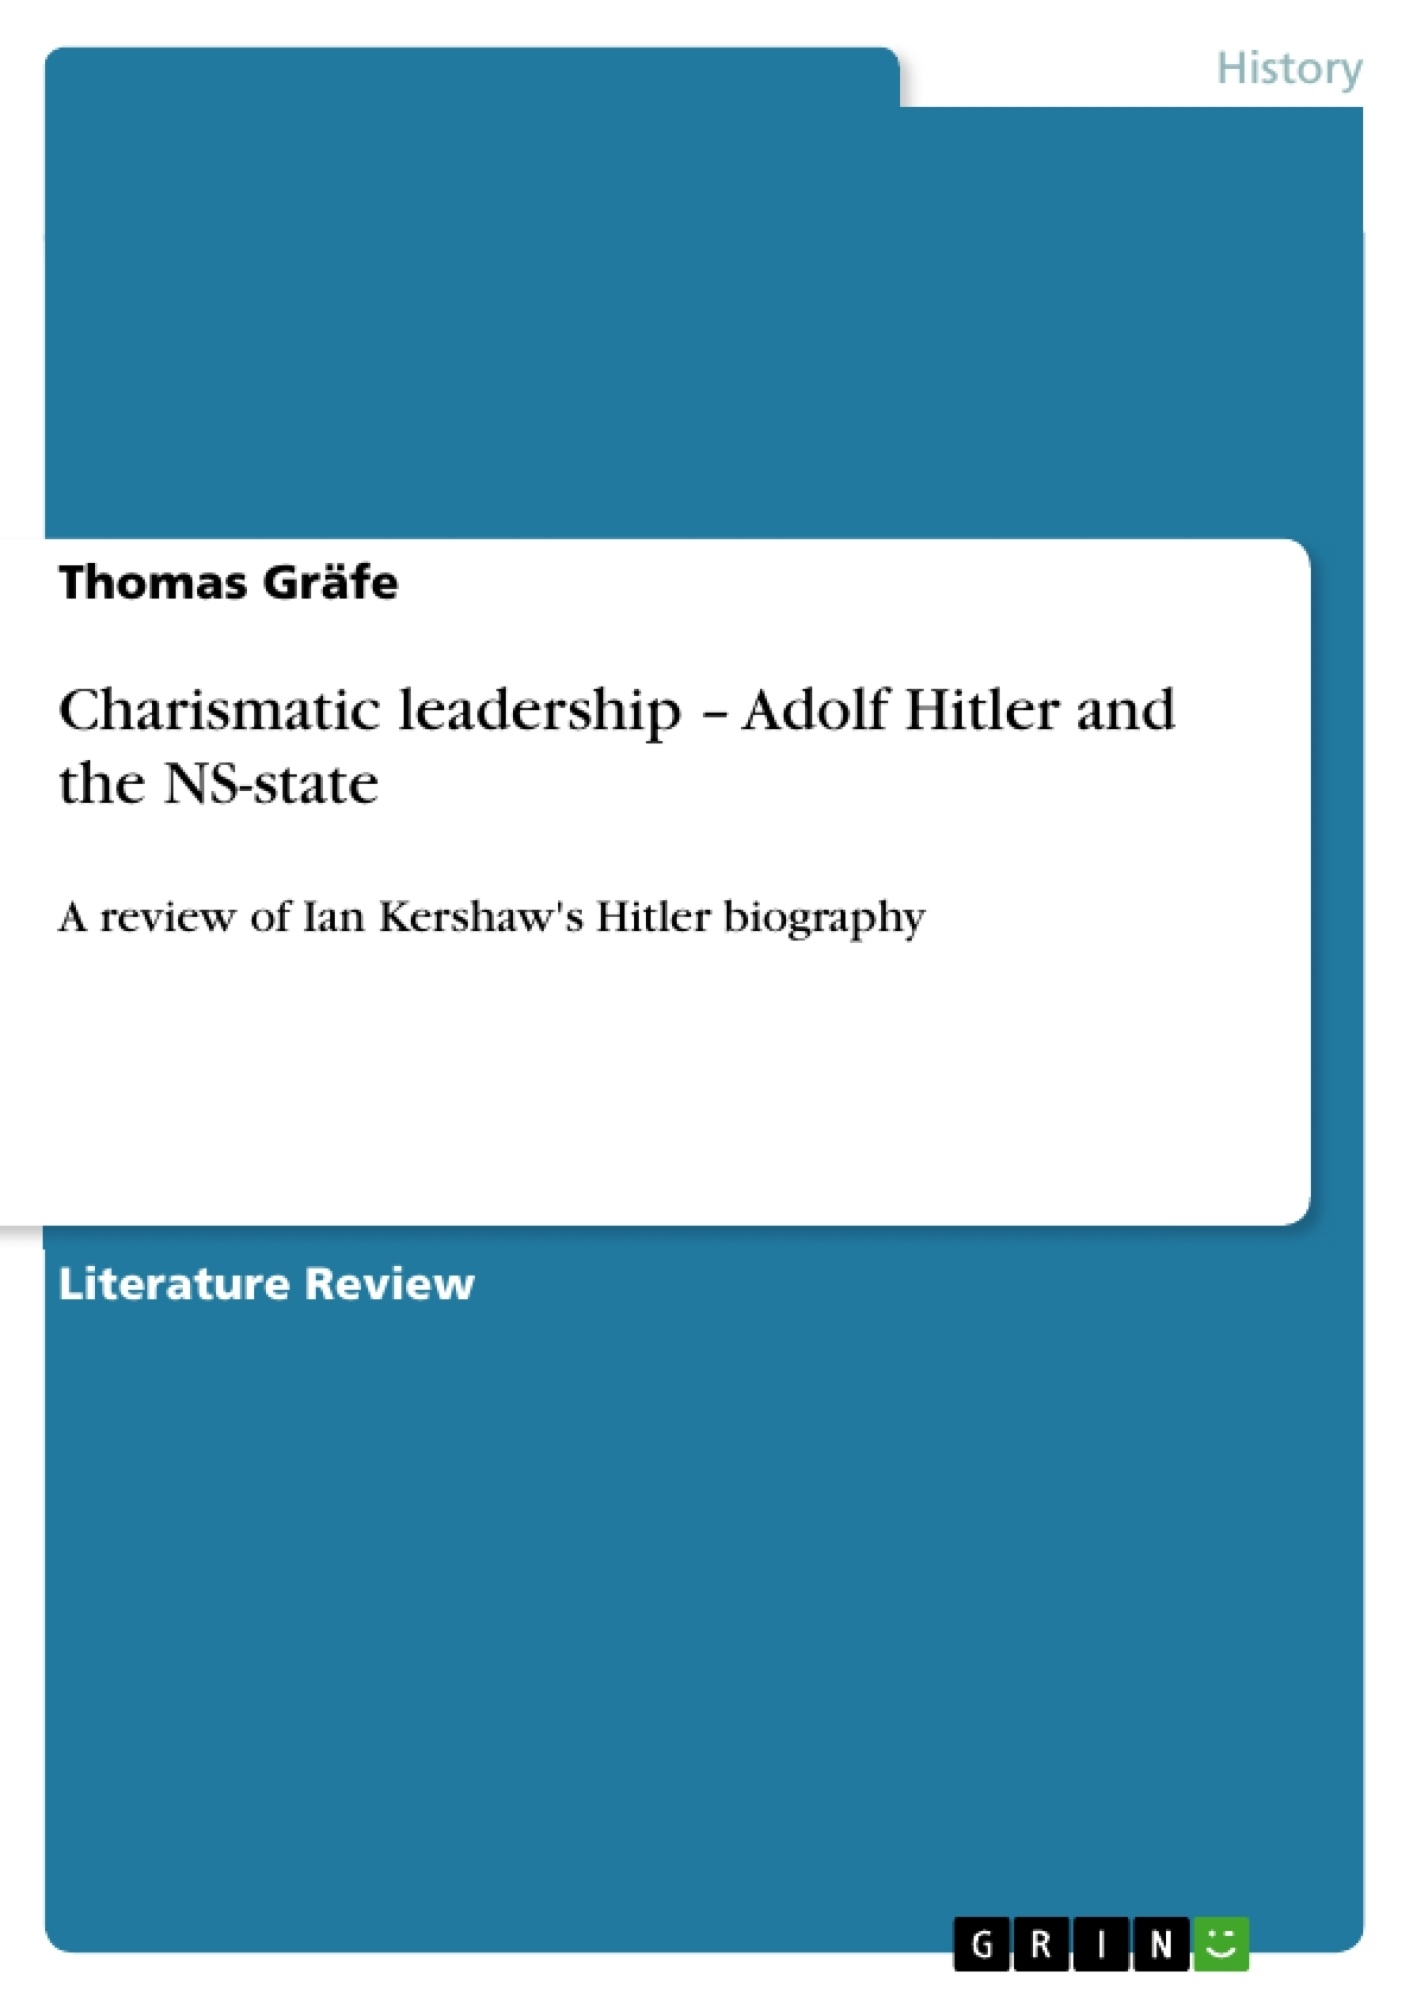 statement about adolf hitler unique essays thesis statement for adolf hitler research